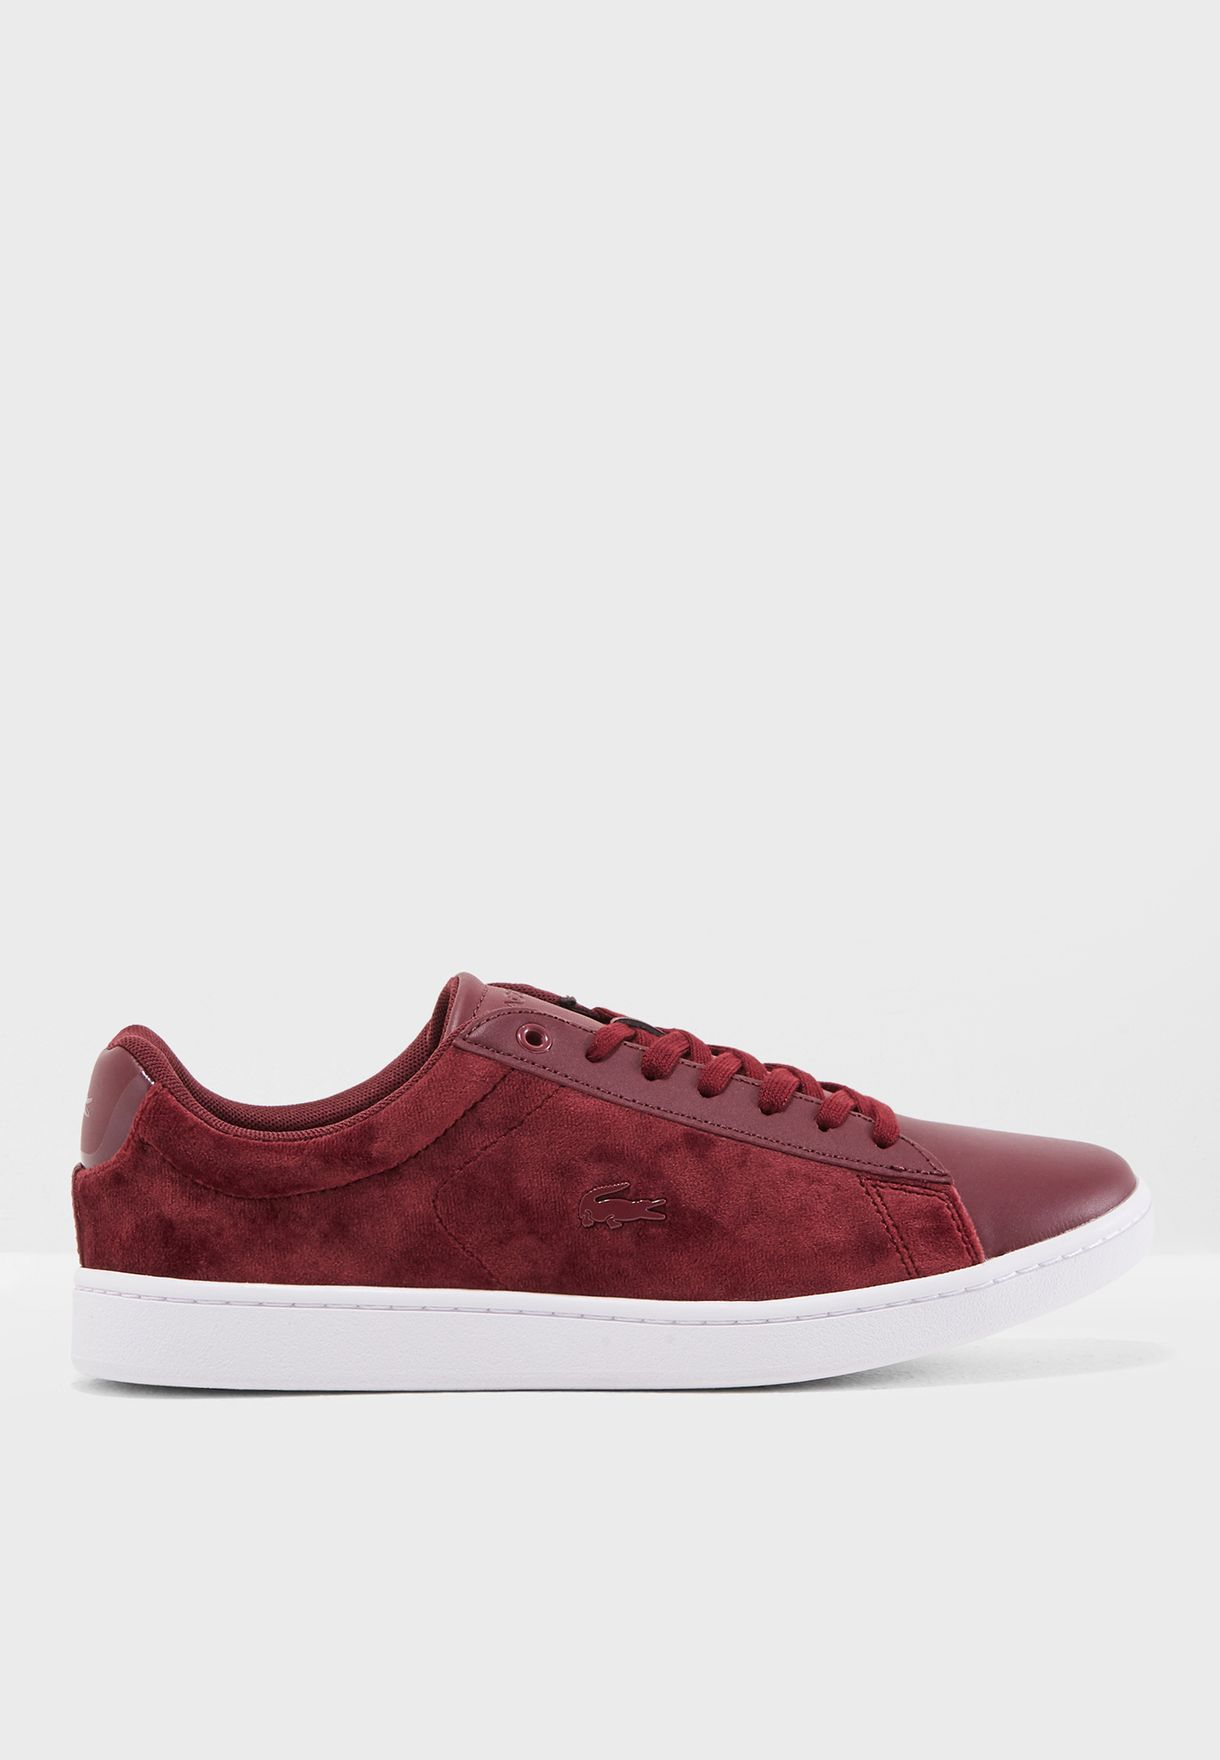 70d528efeefd Shop Lacoste burgundy Carnaby Evo 318 8 Spw Sneaker 736SPW0015 for ...